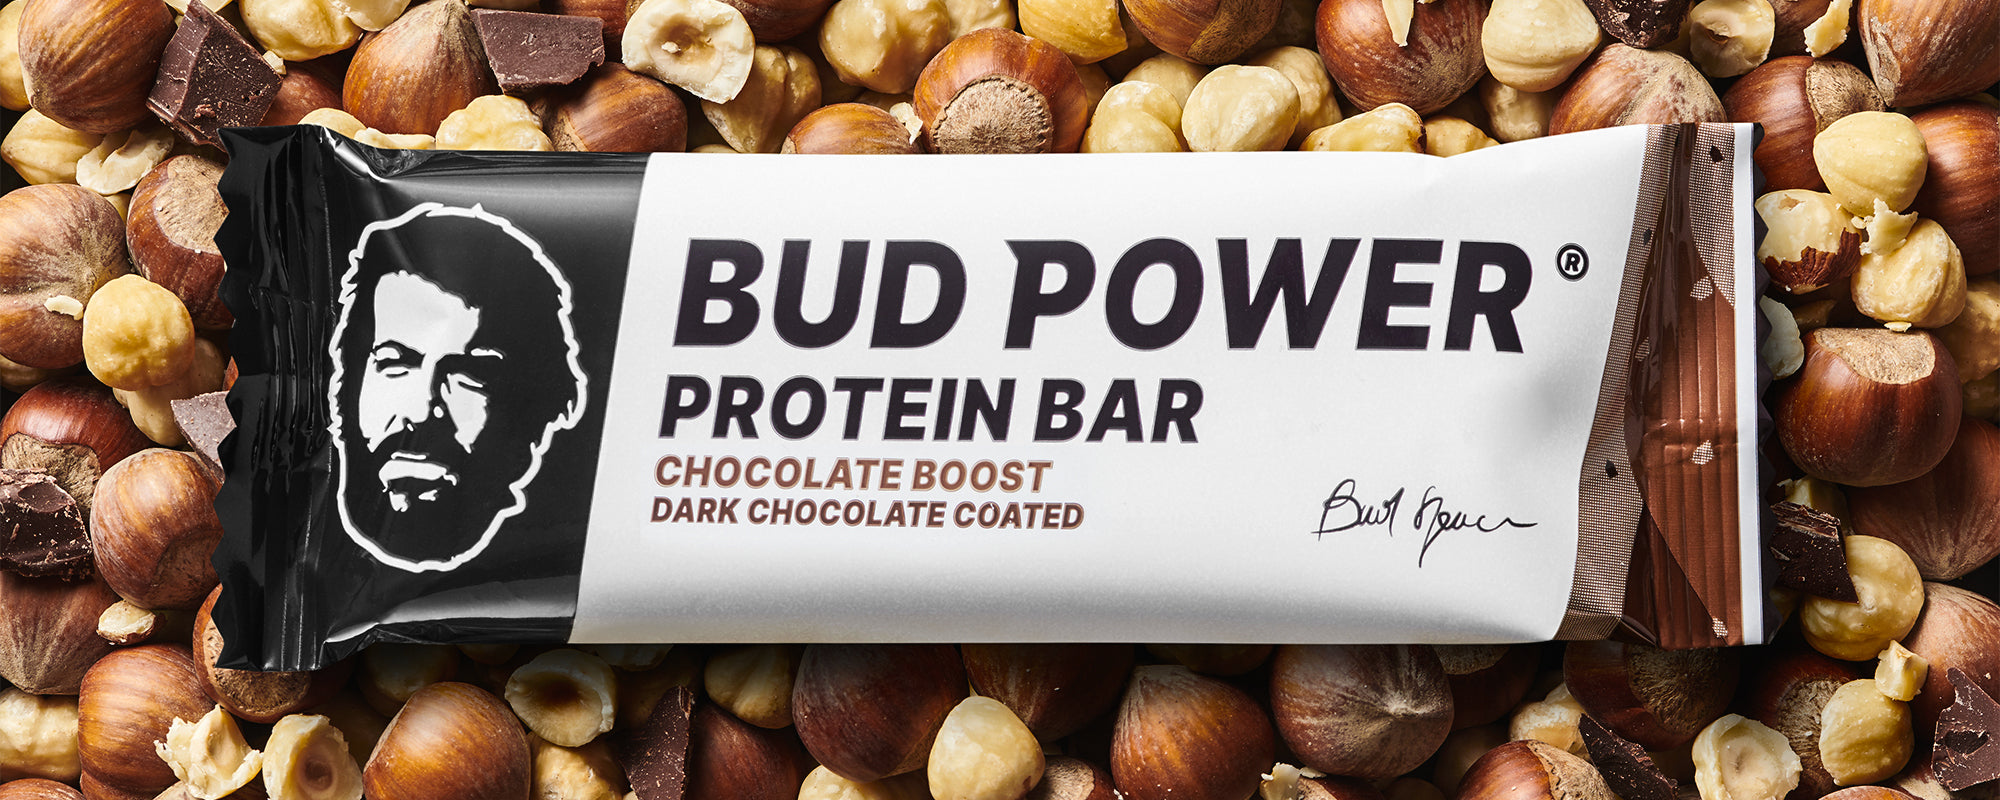 Bud Power - Chocolate Boost